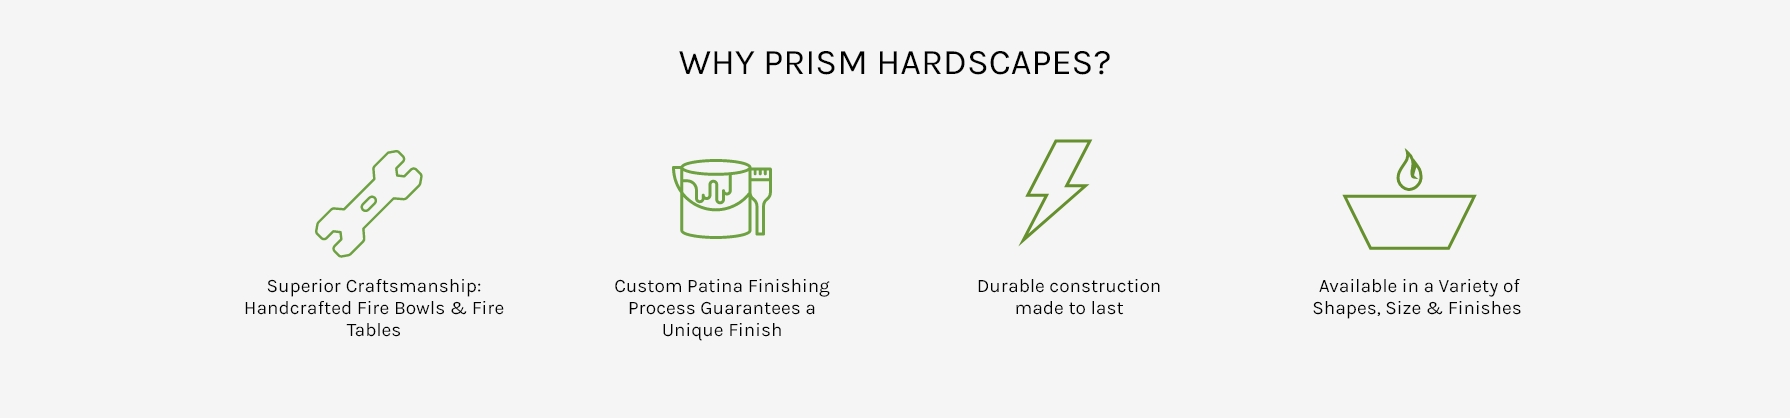 Why Prism Hardscapes?